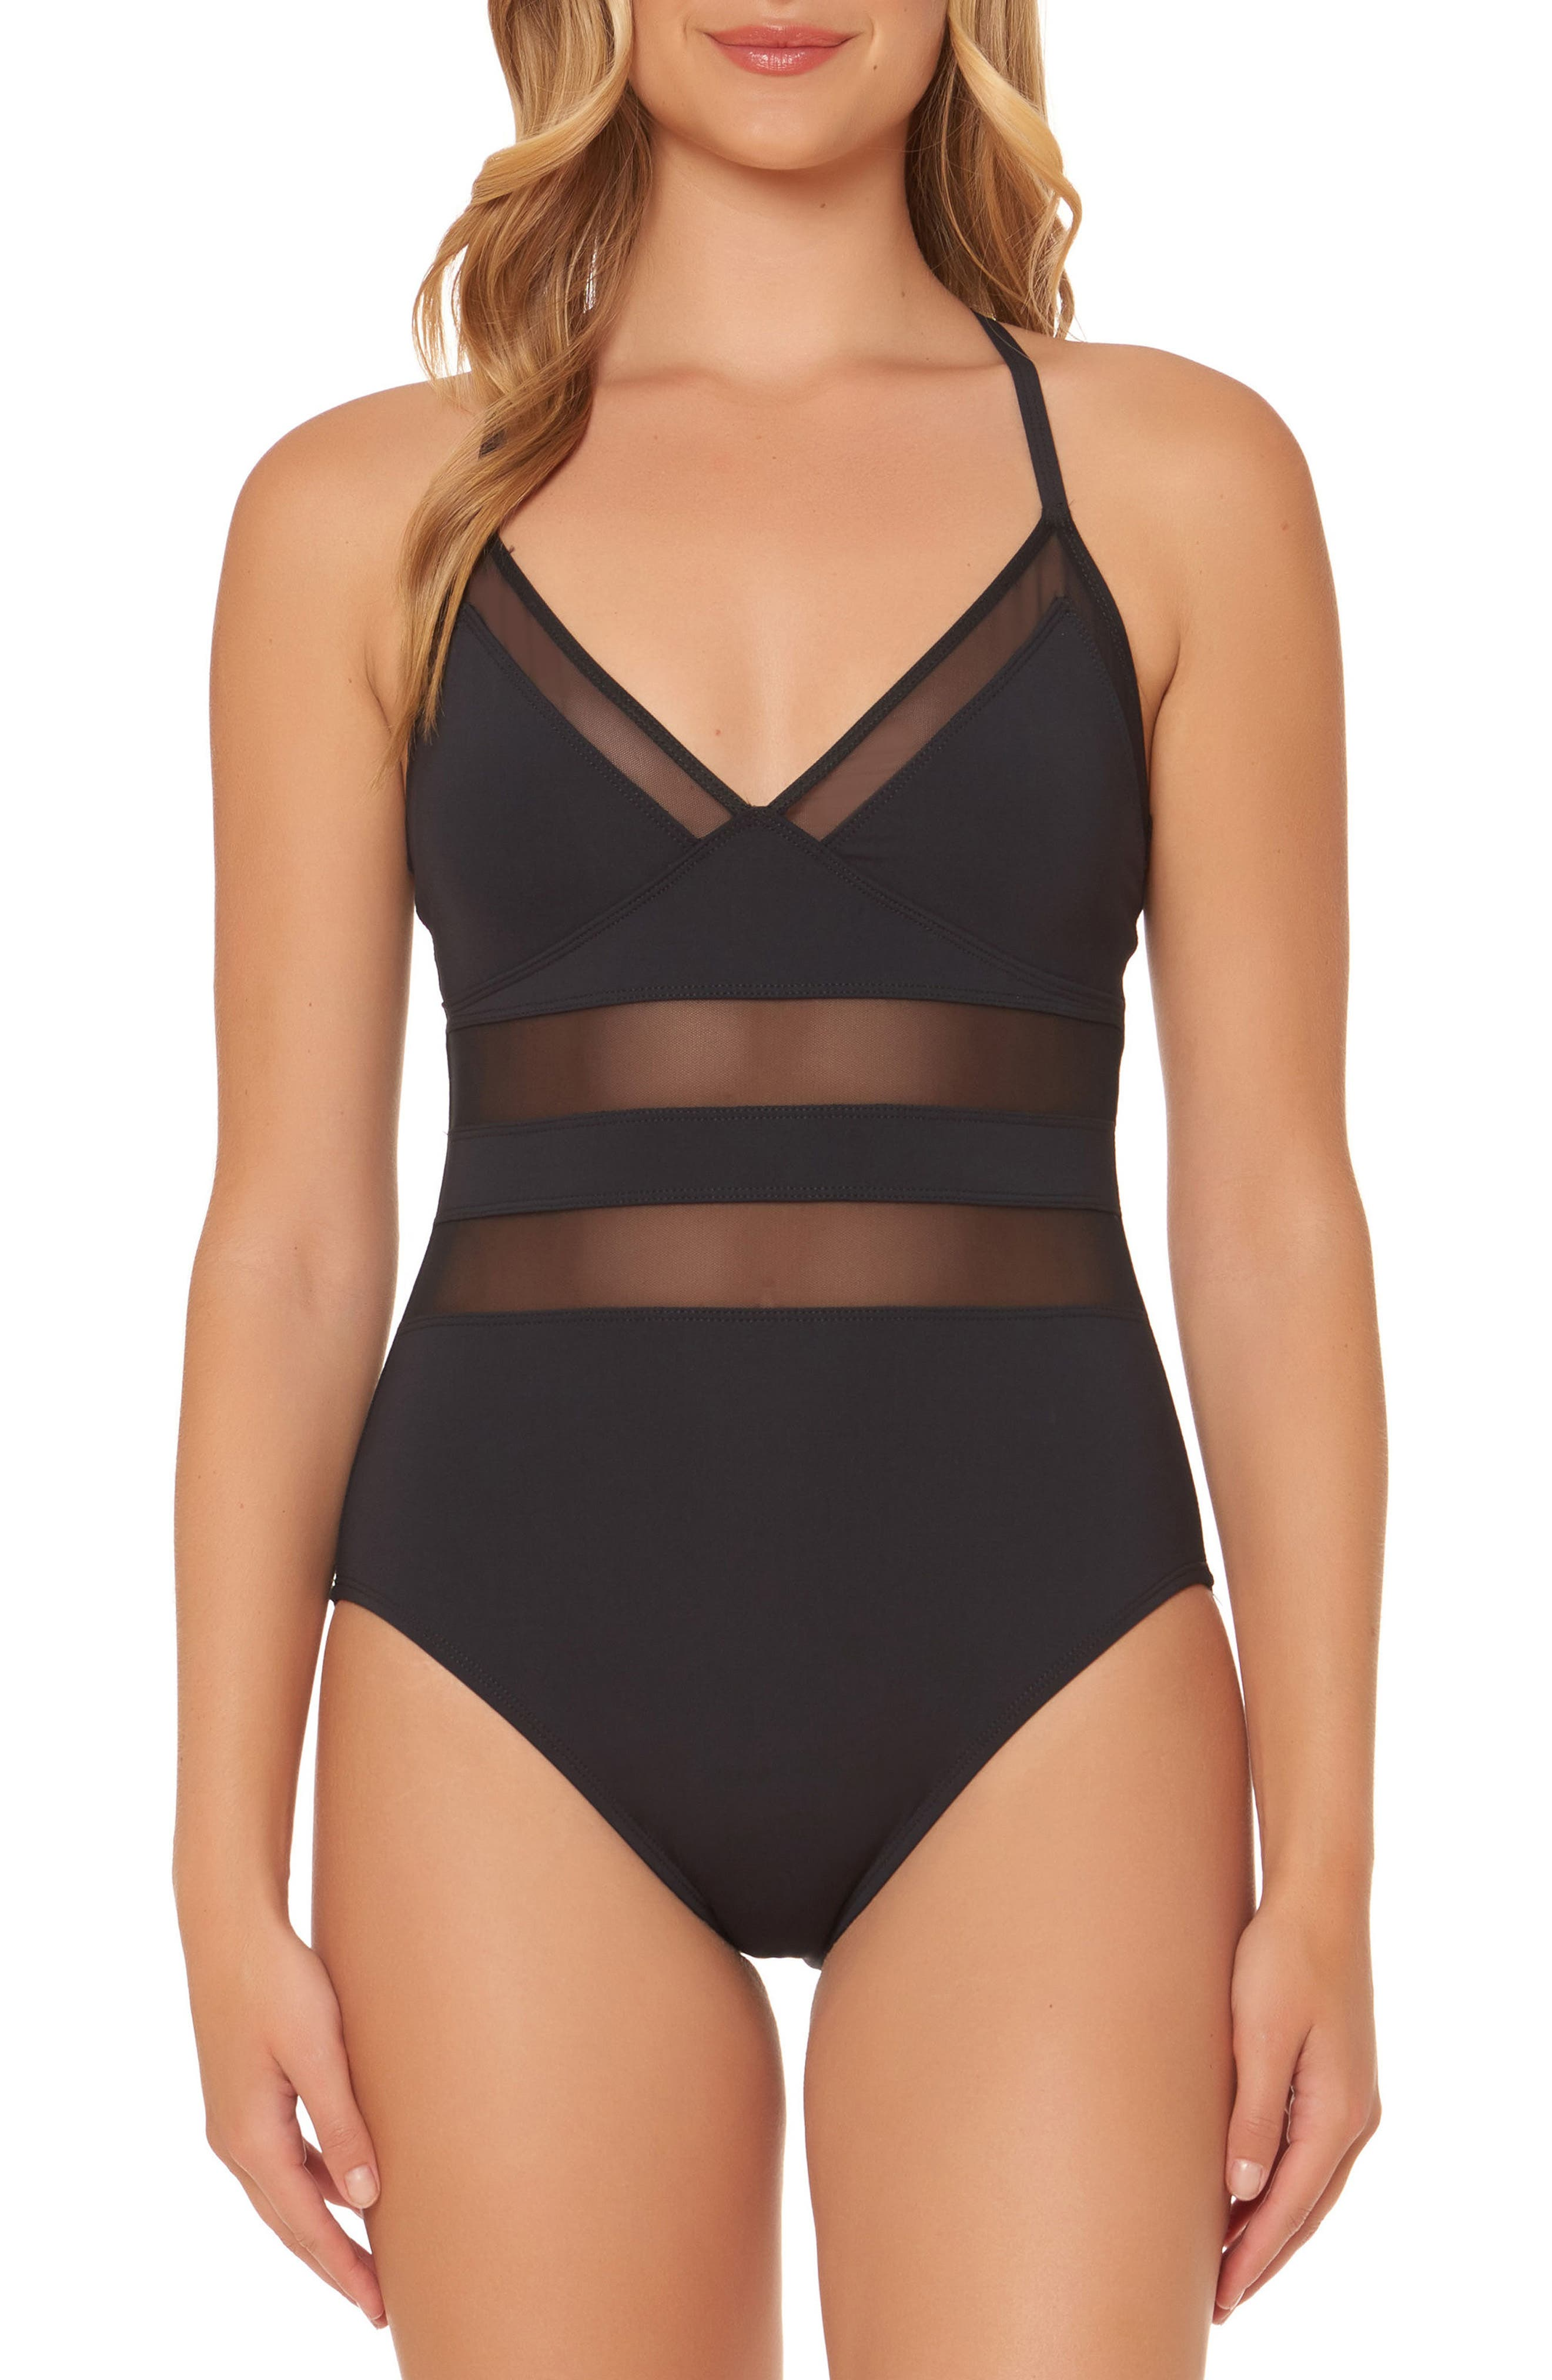 Alternate Image 1 Selected - BLEU by Rod Beattie Mesh Inset One-Piece Swimsuit